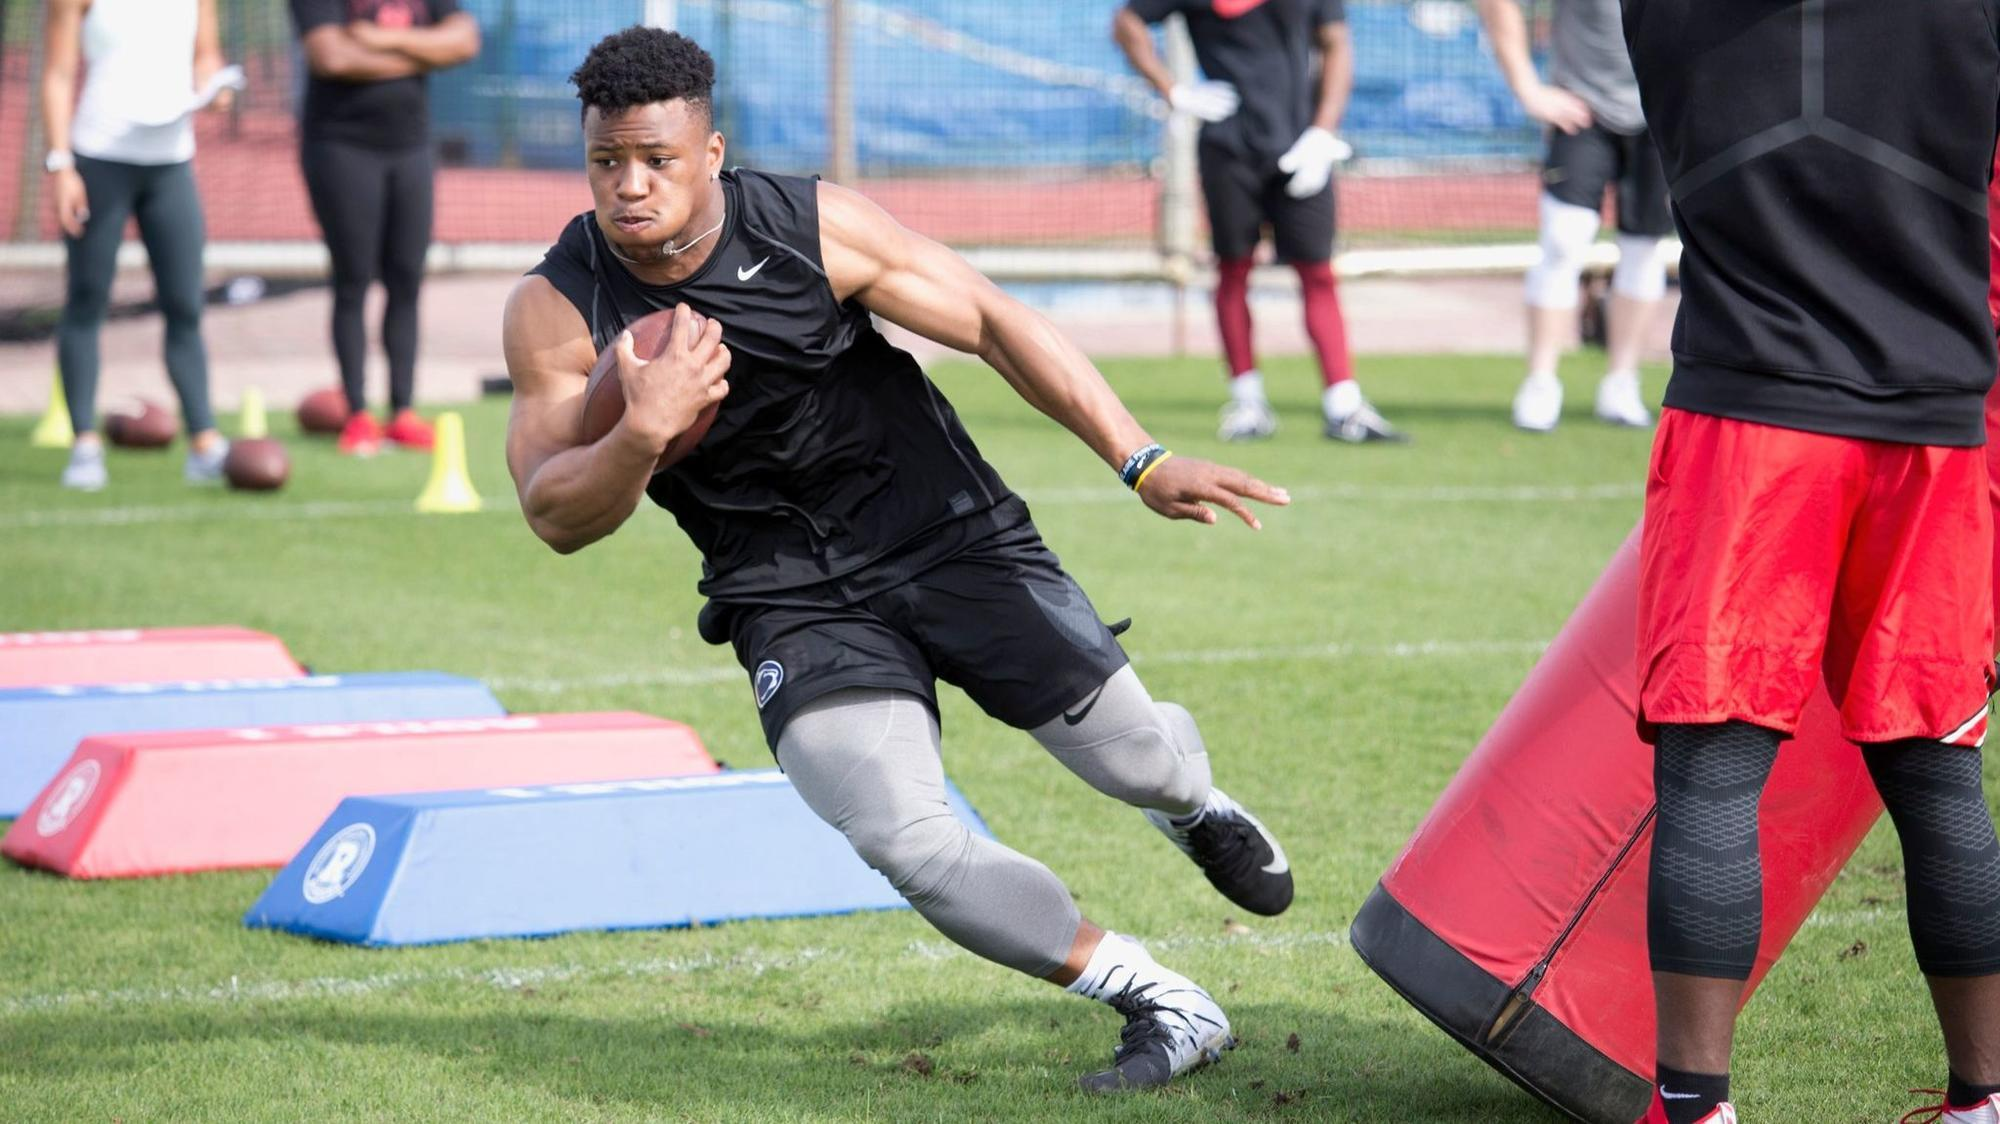 What does Saquon Barkley have to prove at the NFL Scouting Combine  - The  Morning Call 1c11094c9